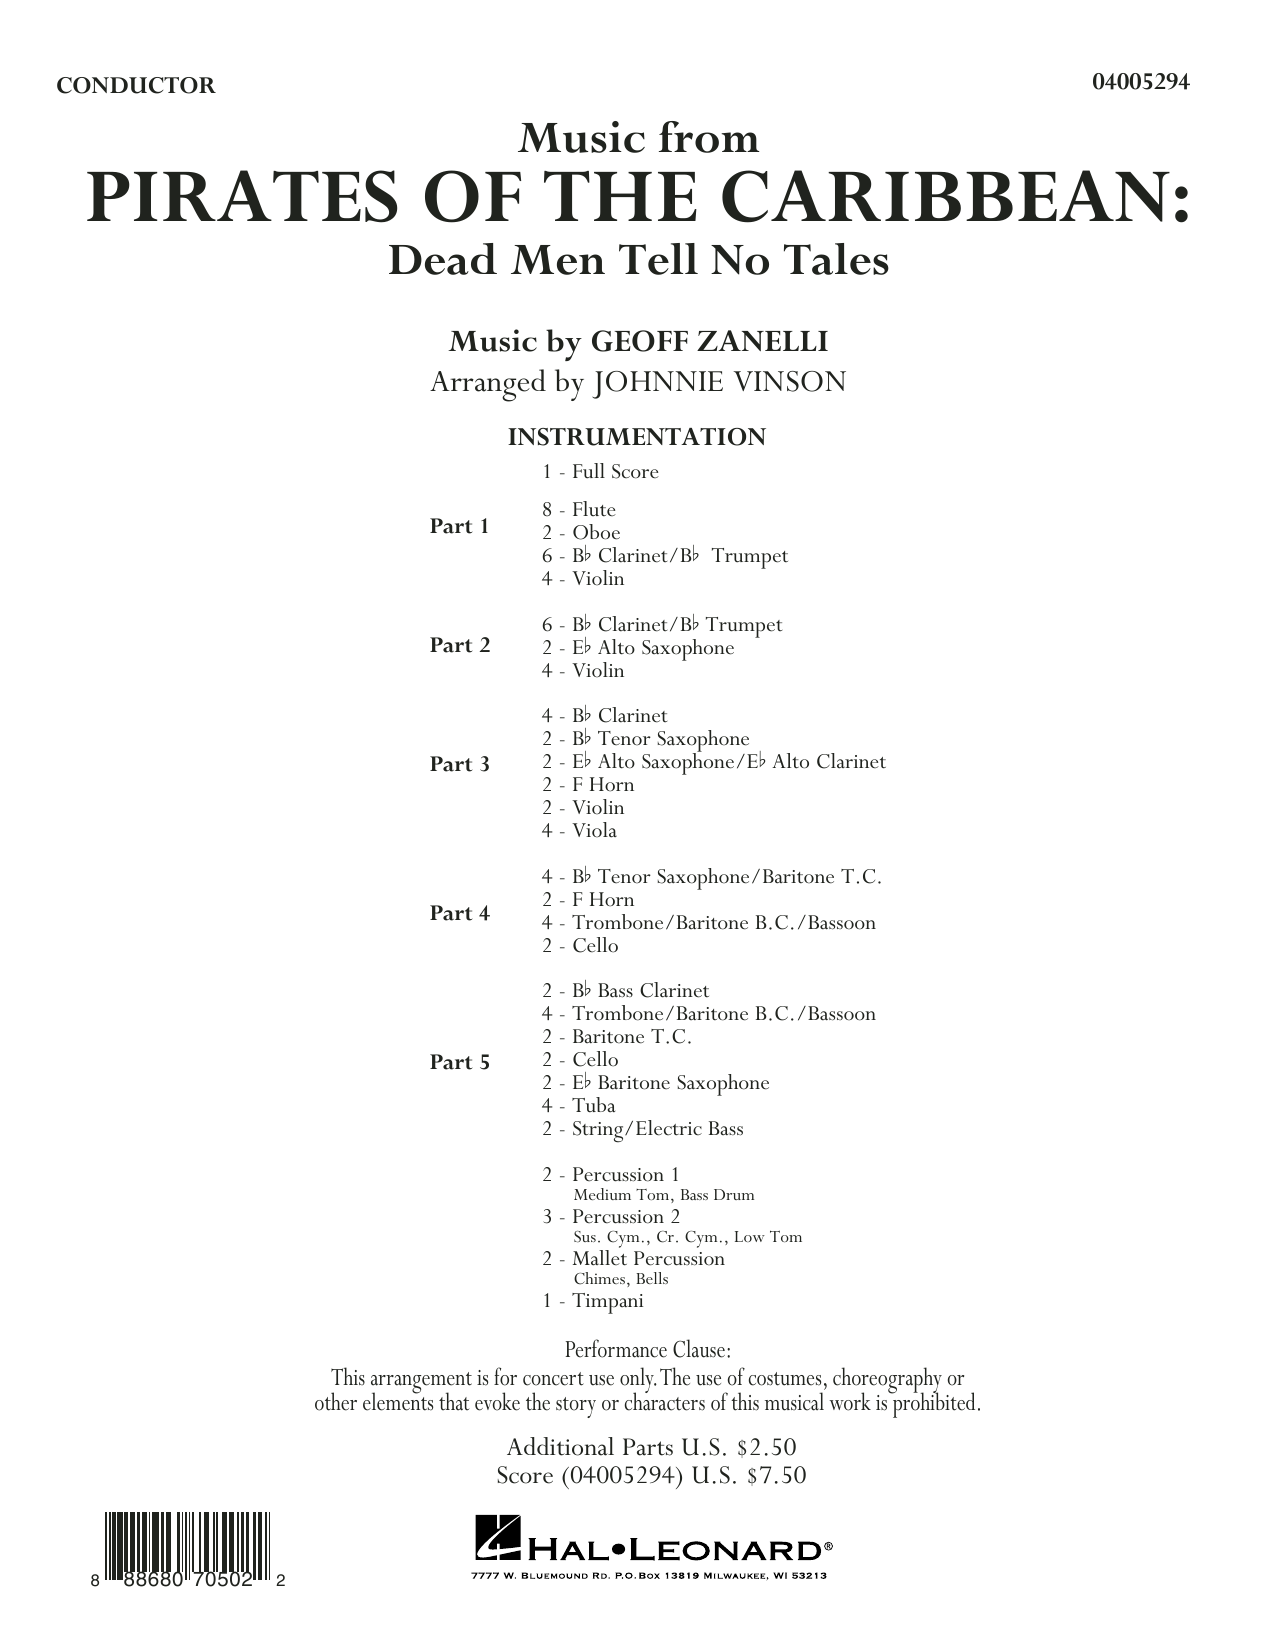 Johnnie Vinson Music from Pirates of the Caribbean: Dead Men Tell No Tales - Conductor Score (Full Score) sheet music notes and chords. Download Printable PDF.